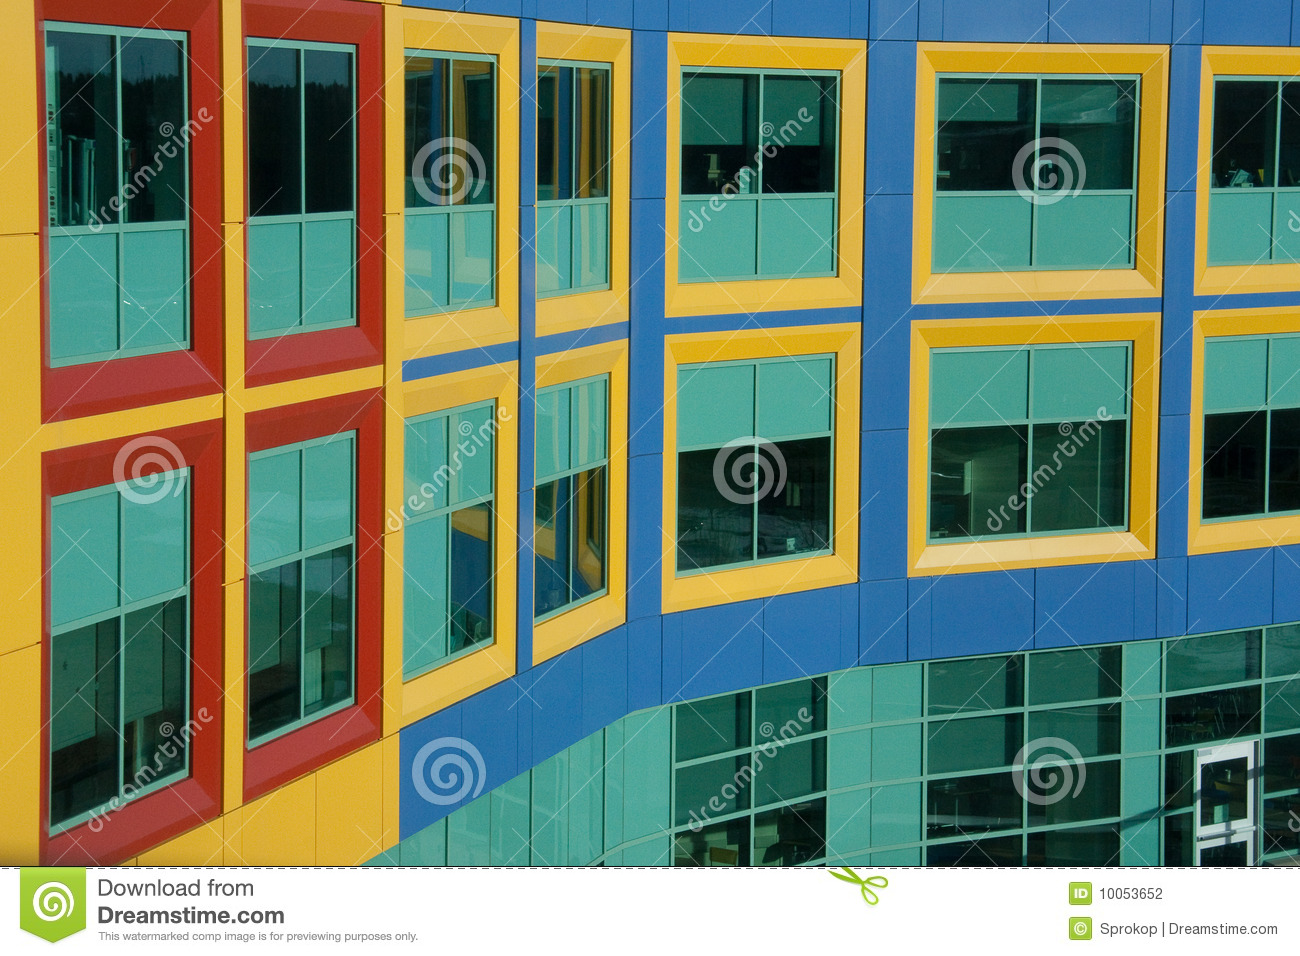 Windows assemelha-se a blocos de apartamentos coloridos